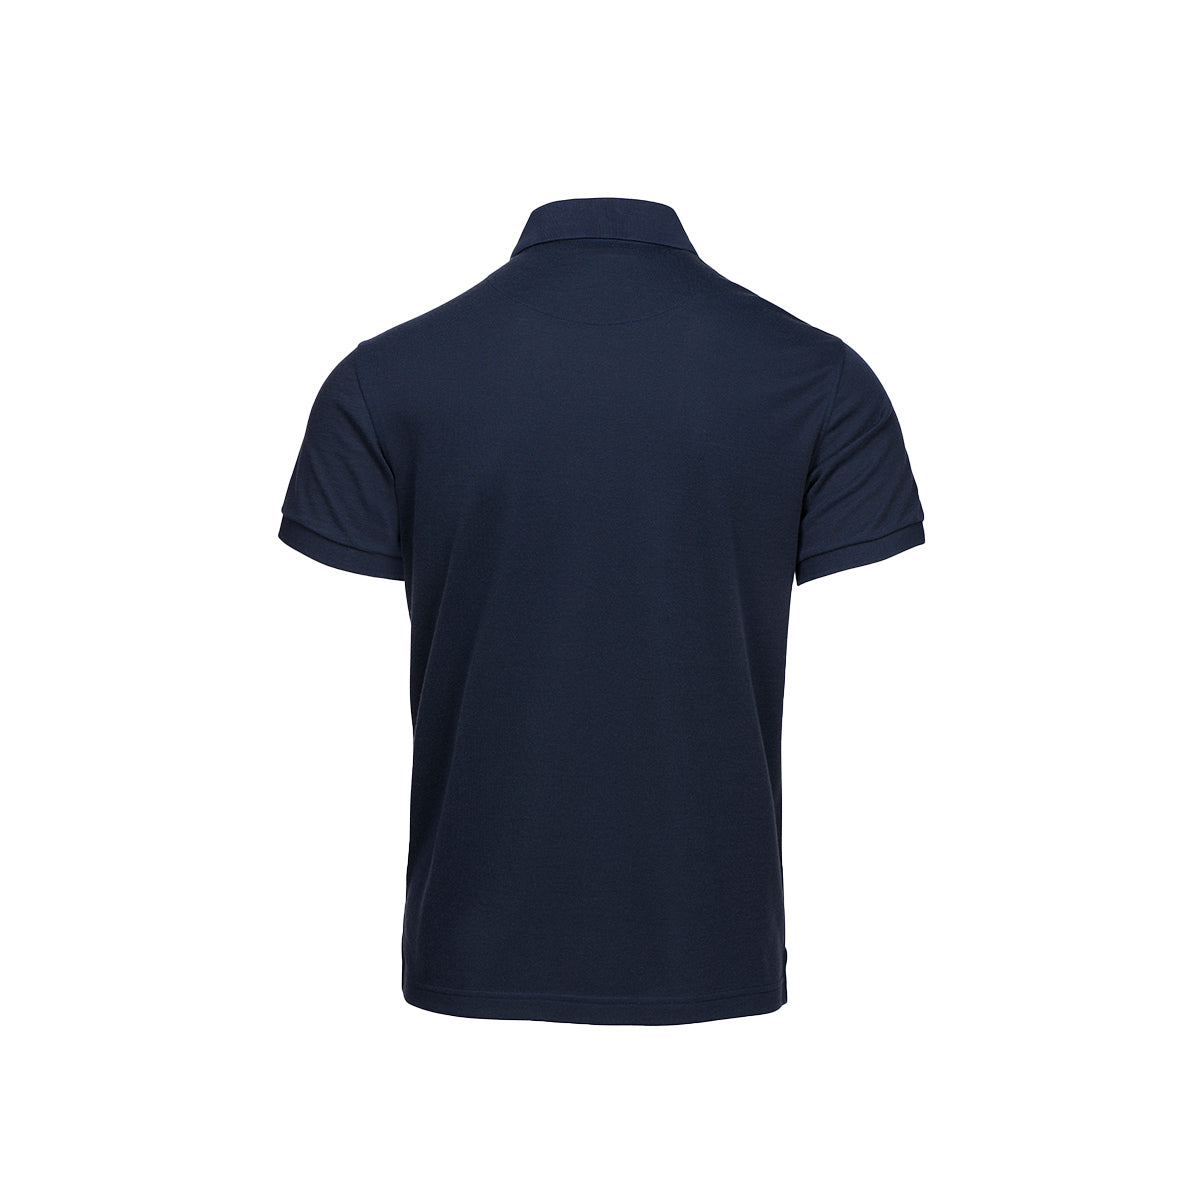 Getaria Polo - background::white,variant::navy